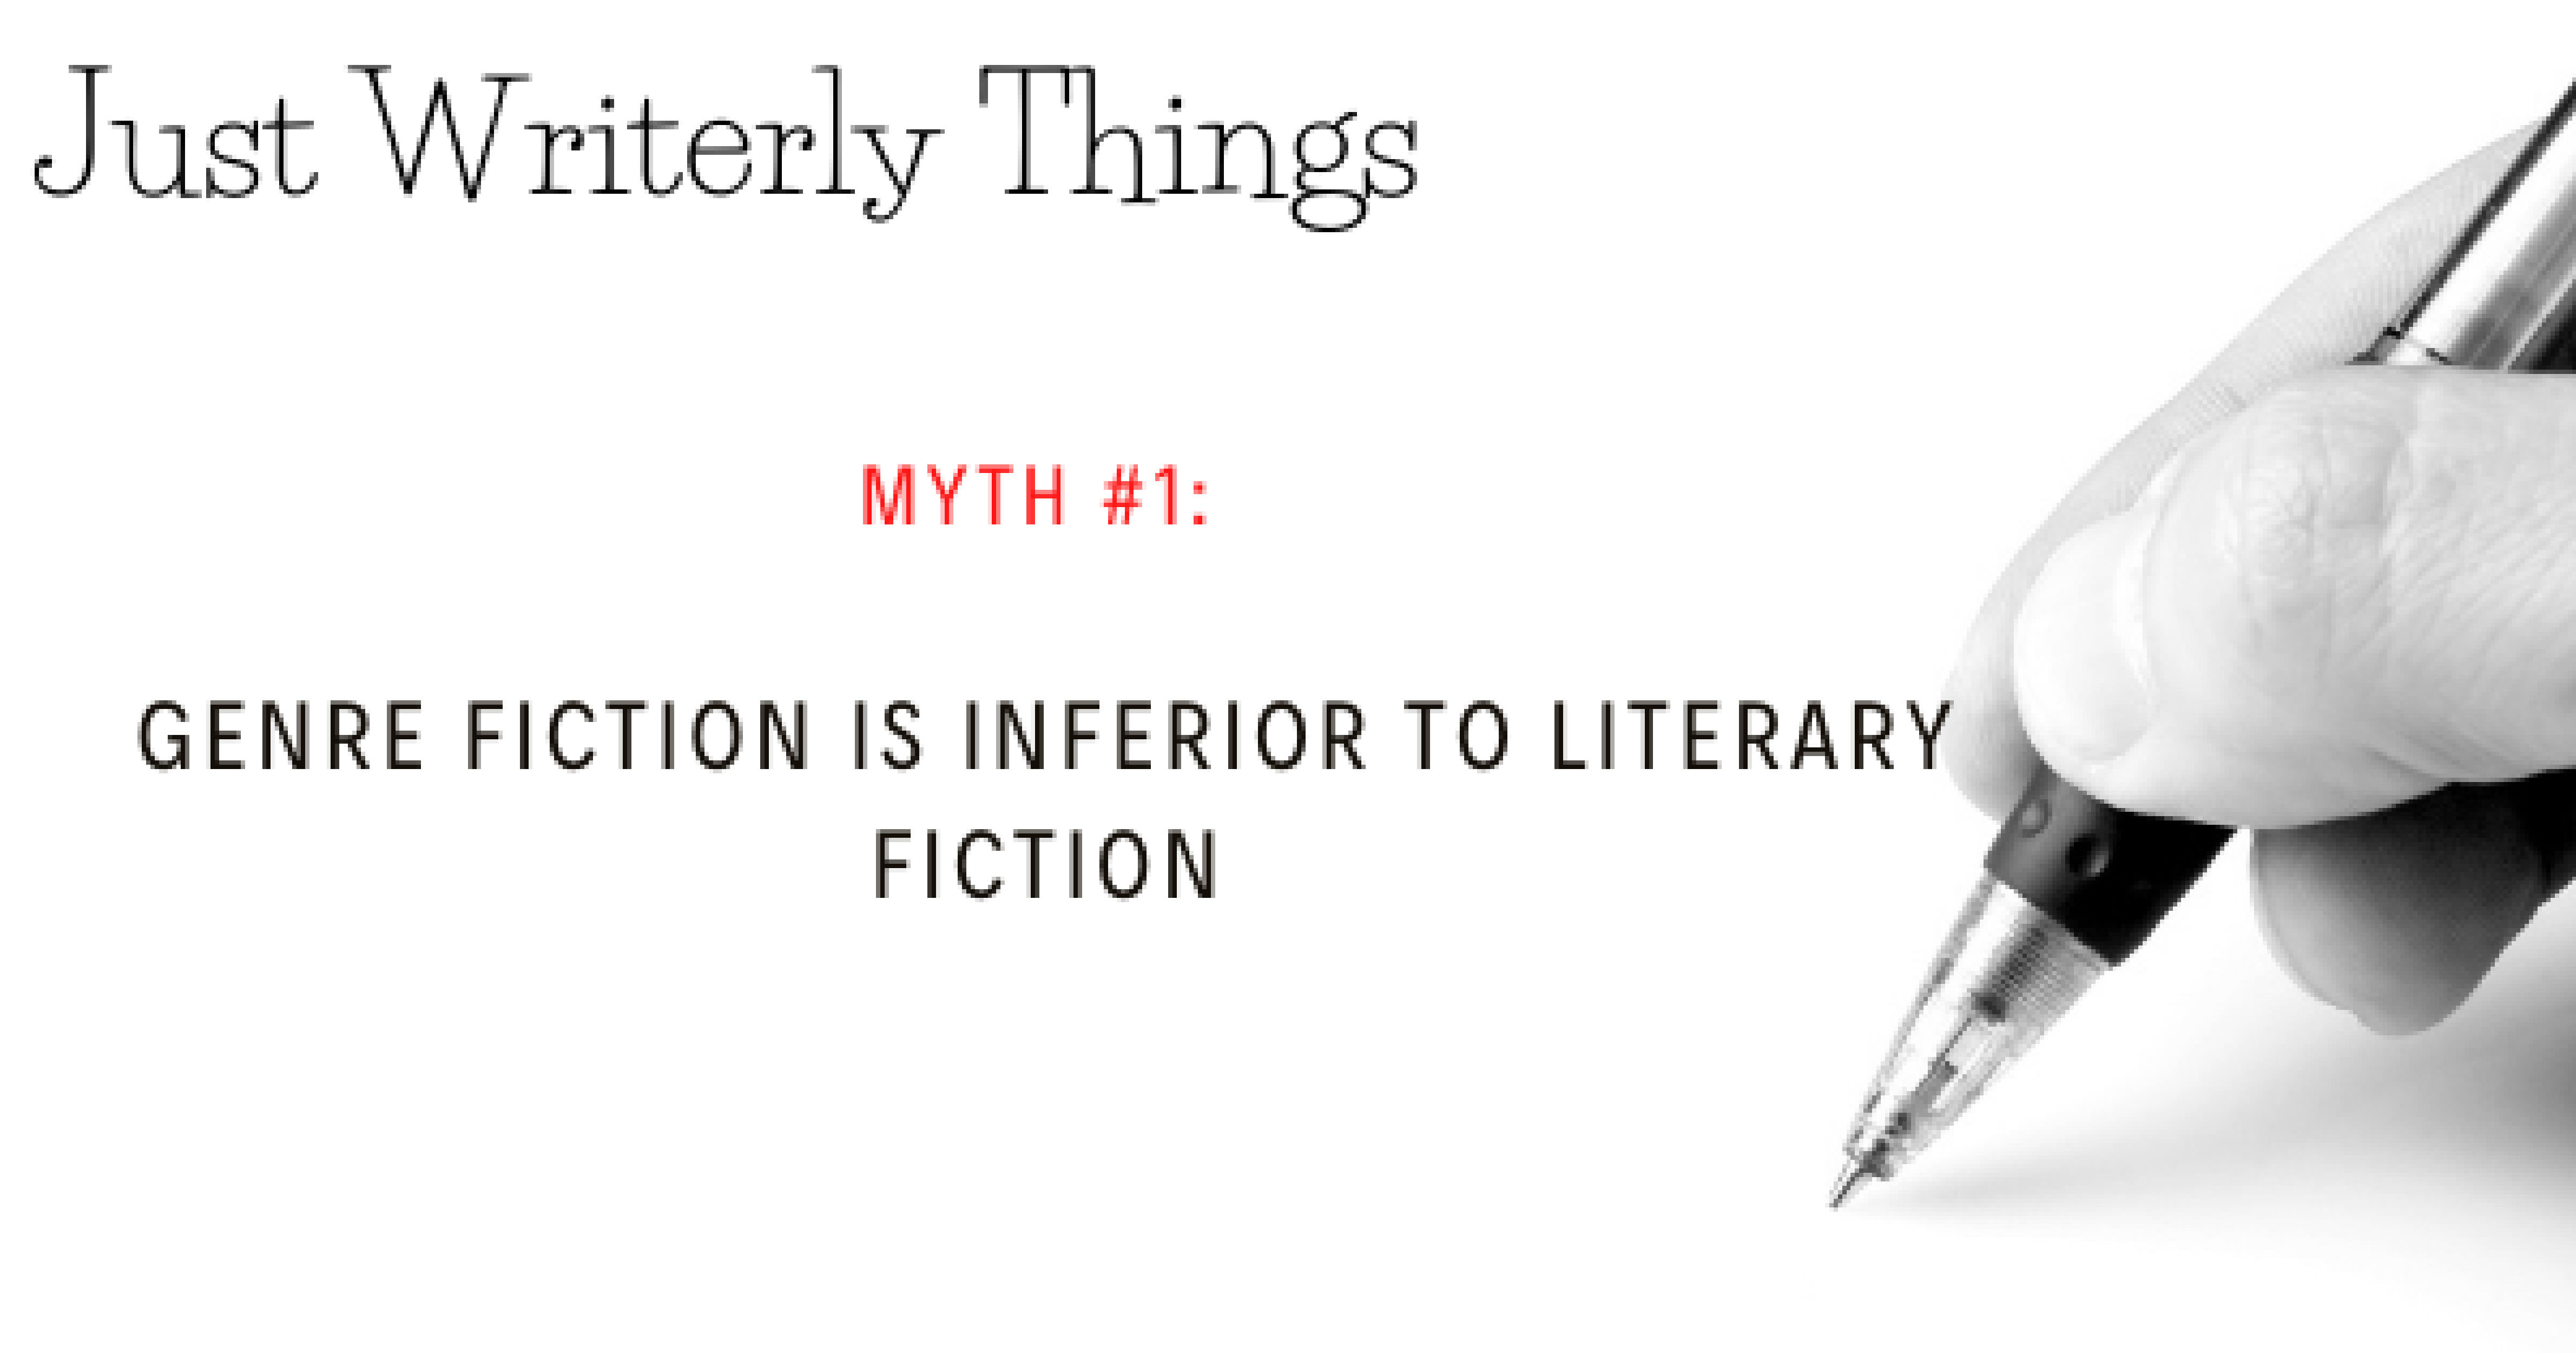 Writing Myth #1